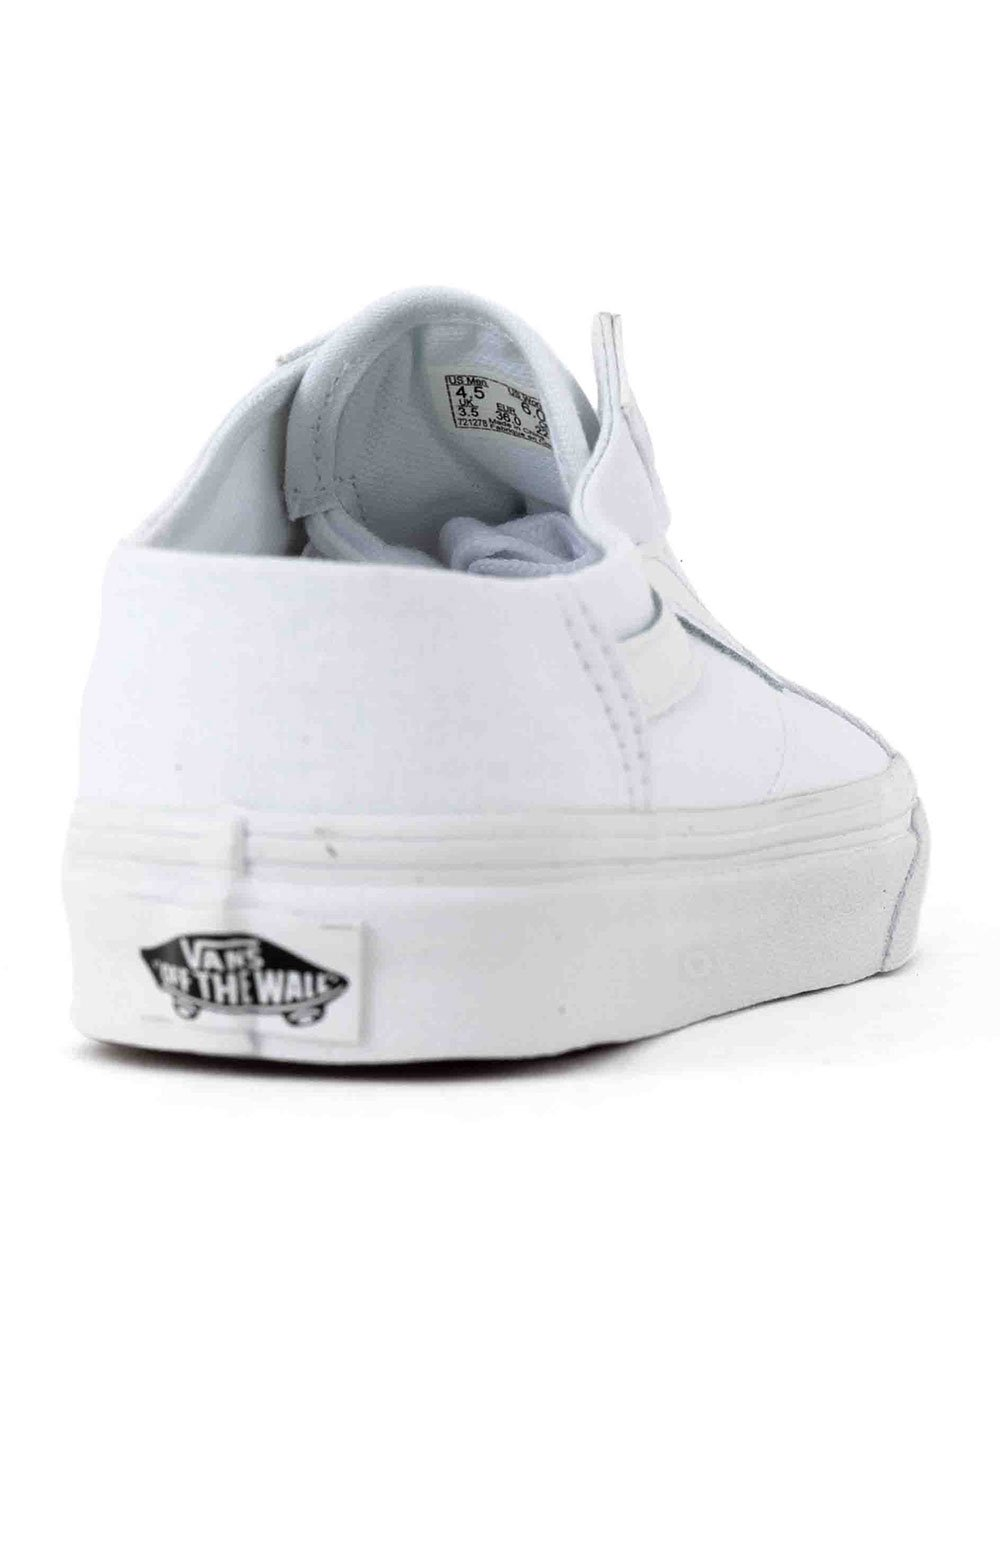 (P3YWC6) Old Skool Mule Shoe - White/True White 5